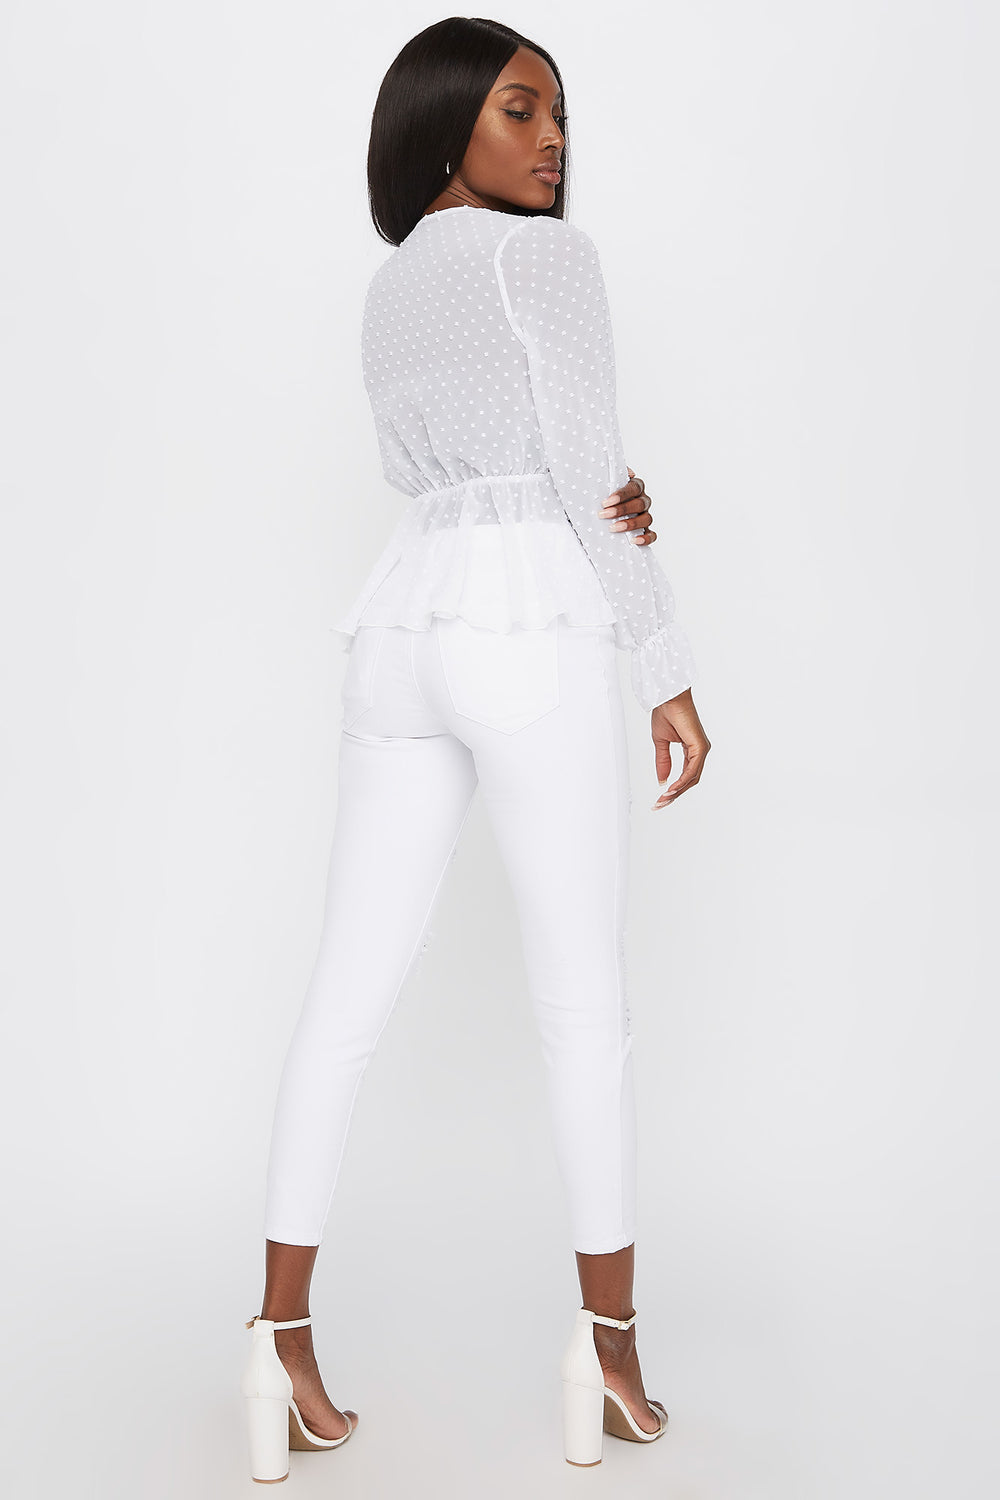 Sheer Dotted Surplice Long Sleeve Peplum Blouse White